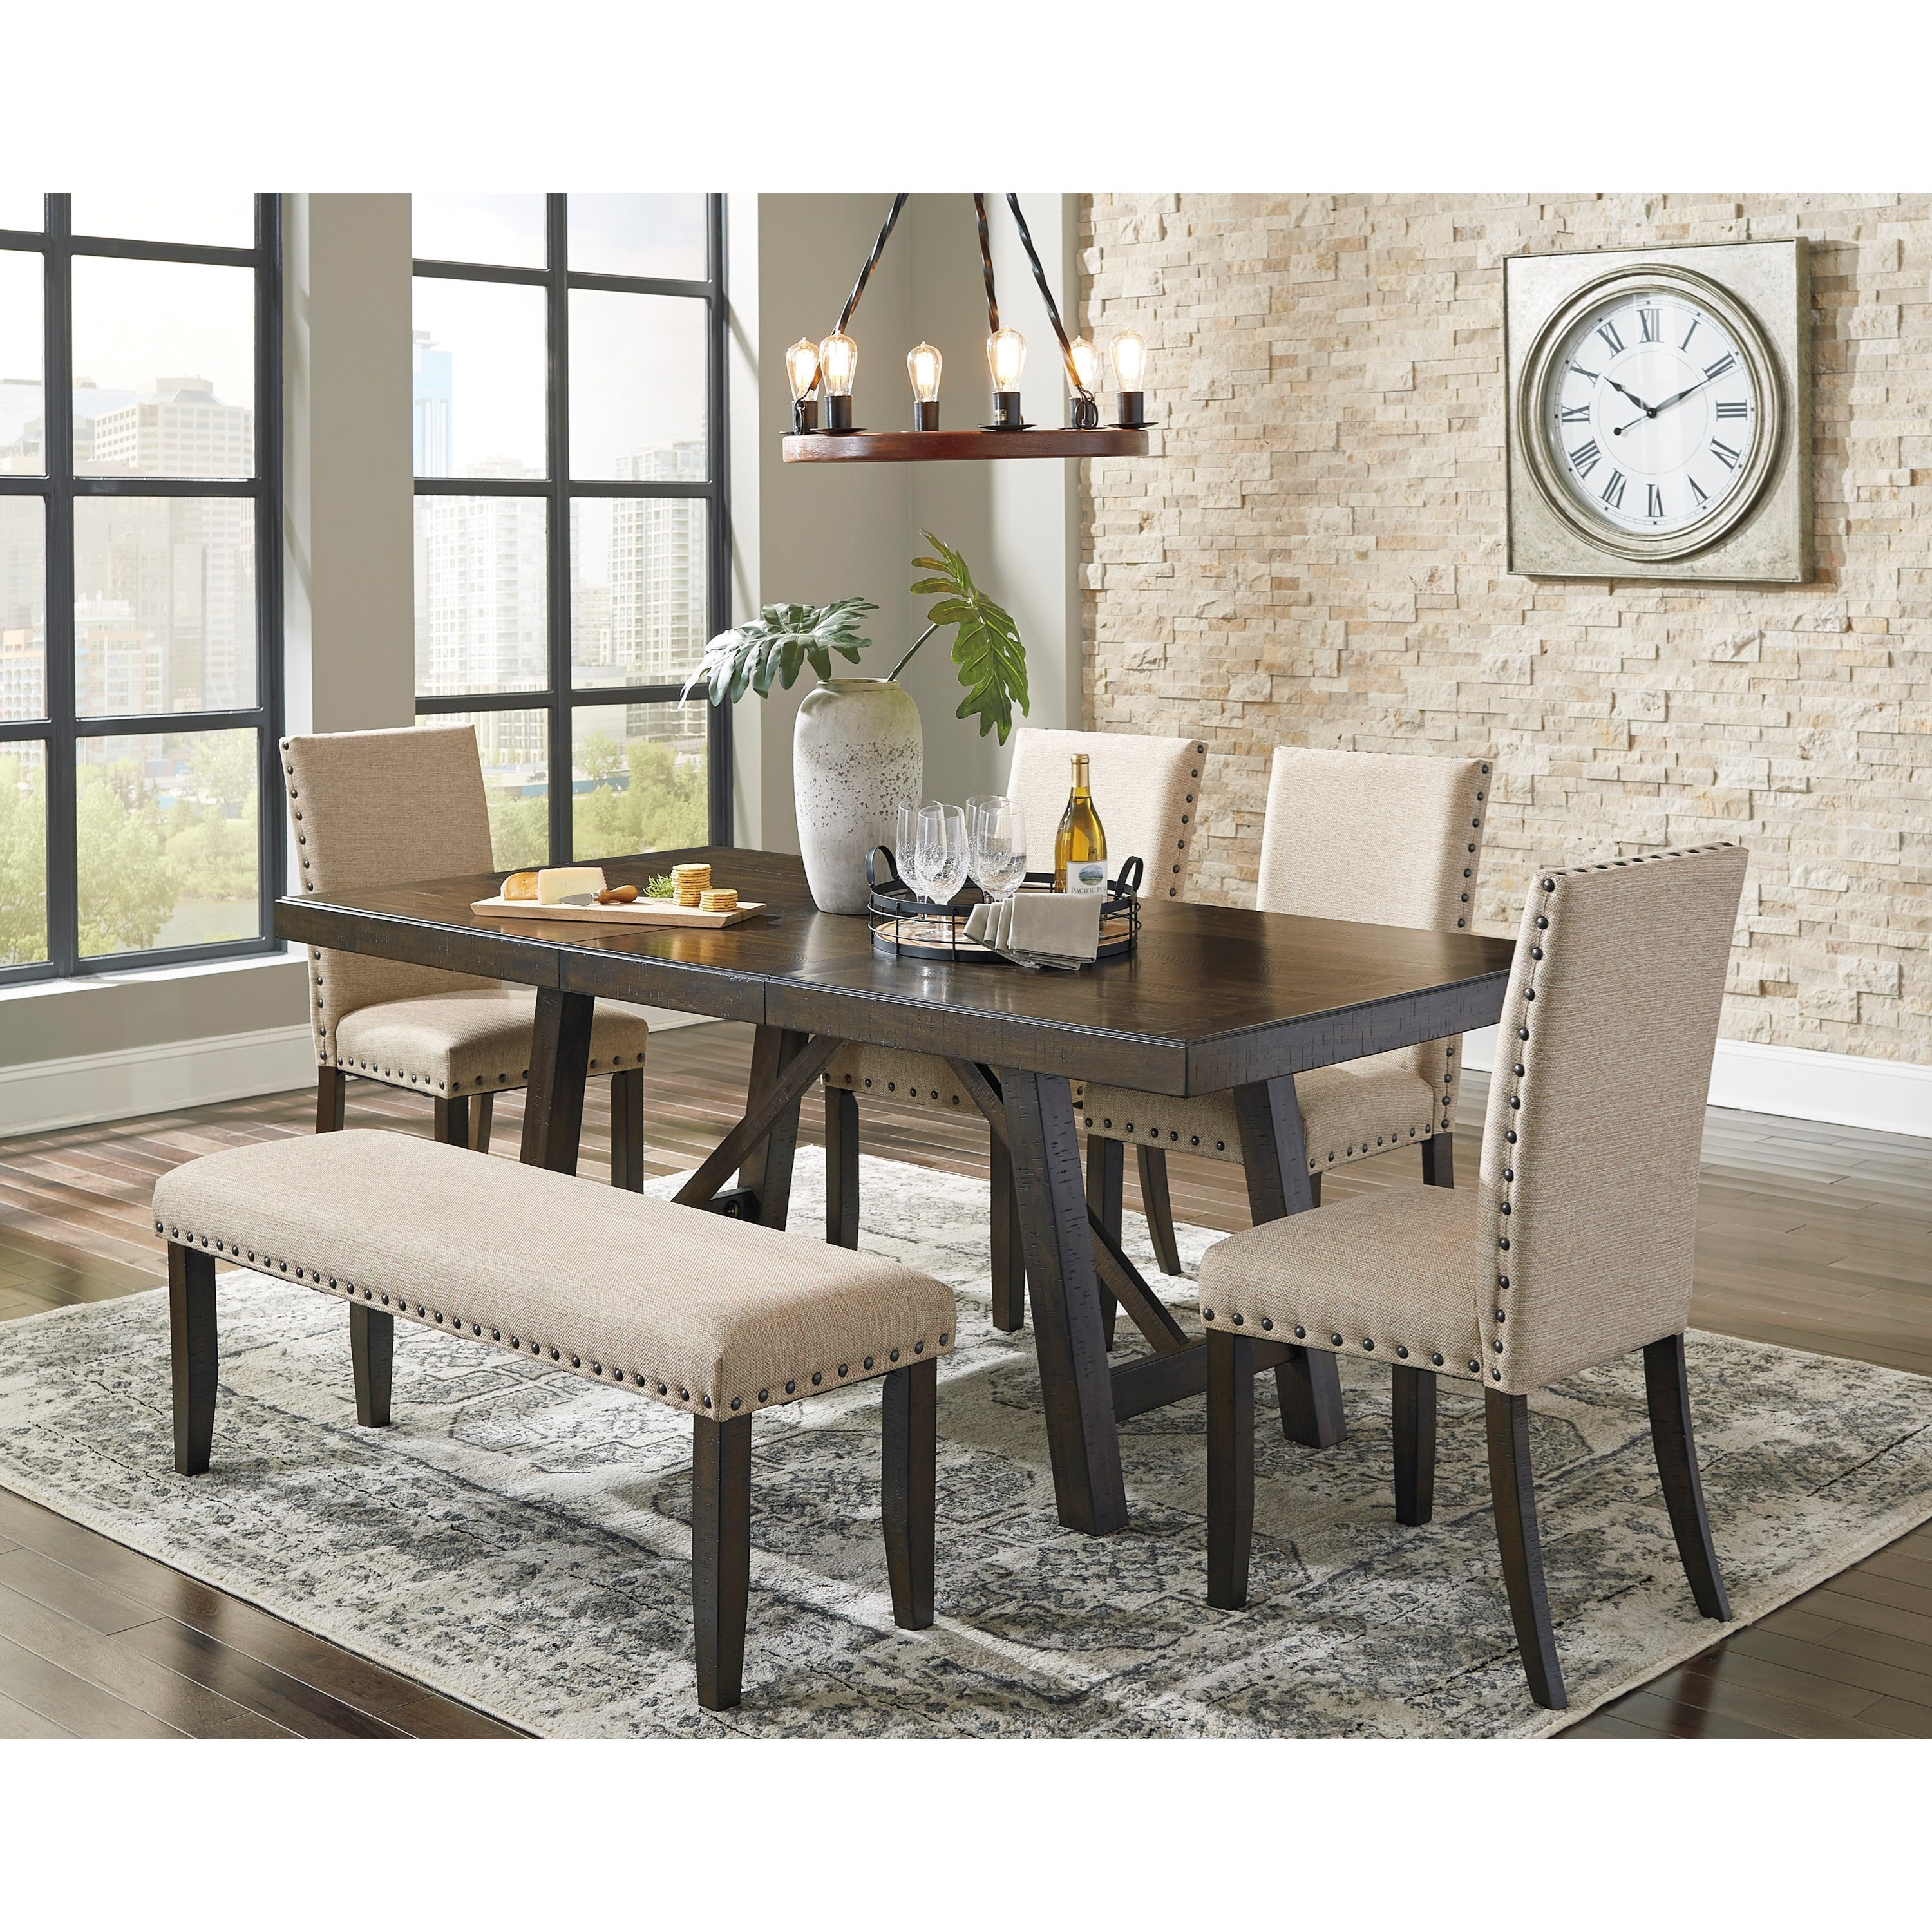 Ashley Signature Design Rokane Dining Table Set For Six With Bench Dunk Bright Furniture Table Chair Set With Bench